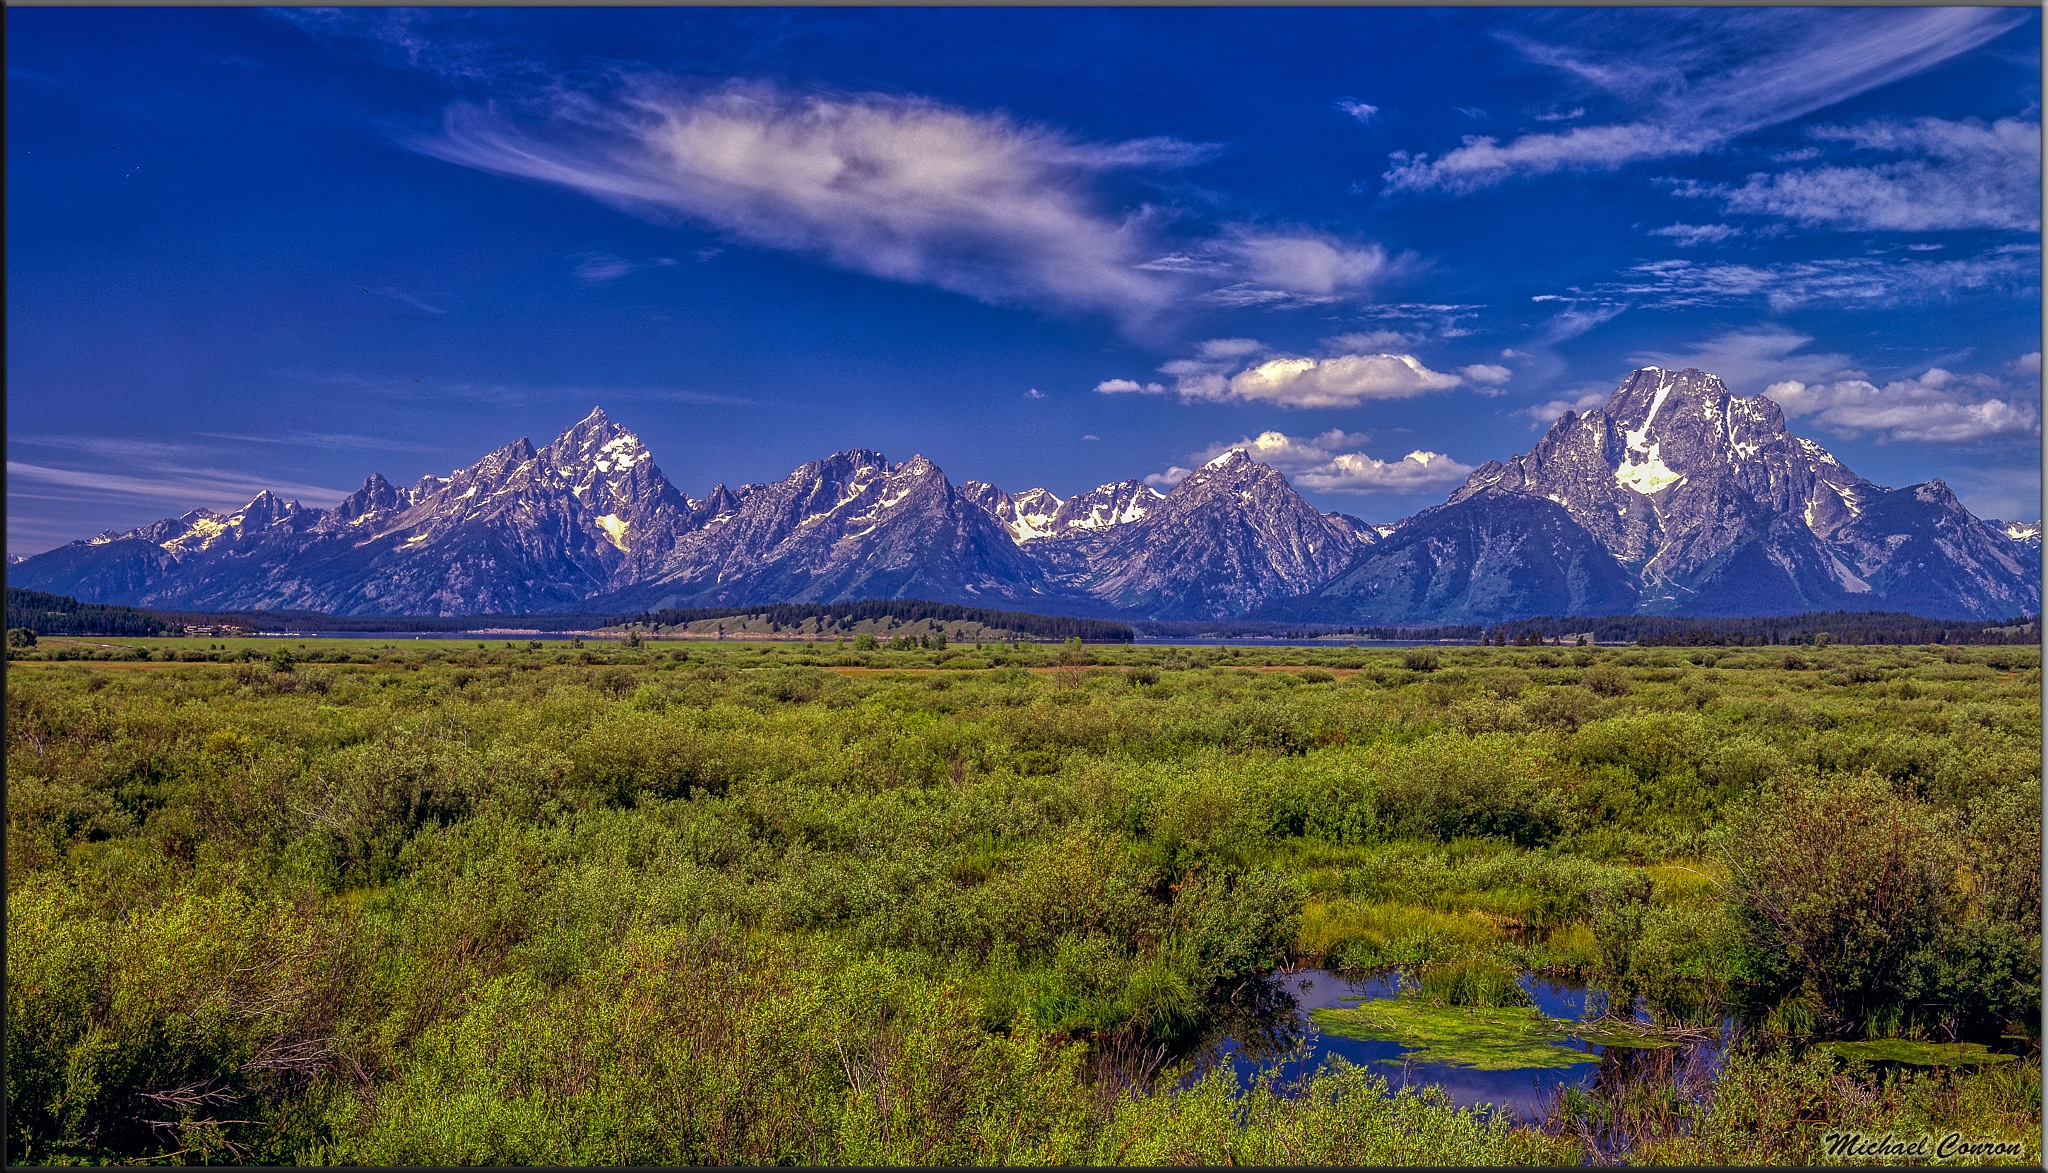 Grand Tetons - Wyoming by Michael Conron